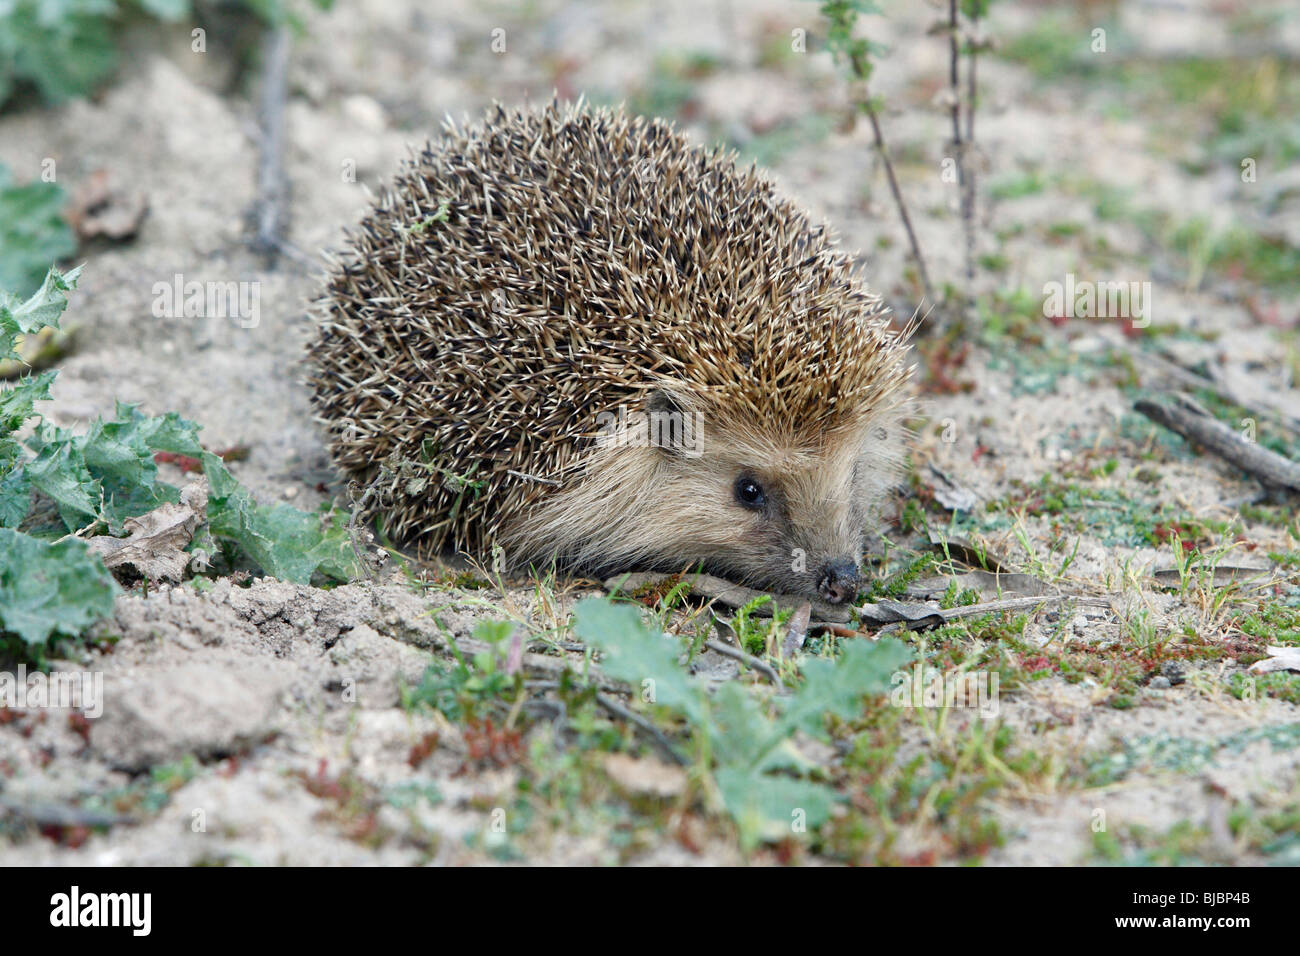 European Hedgehog (Erinaceus europaeus) blonde coloured phase animal, Portugal - Stock Image